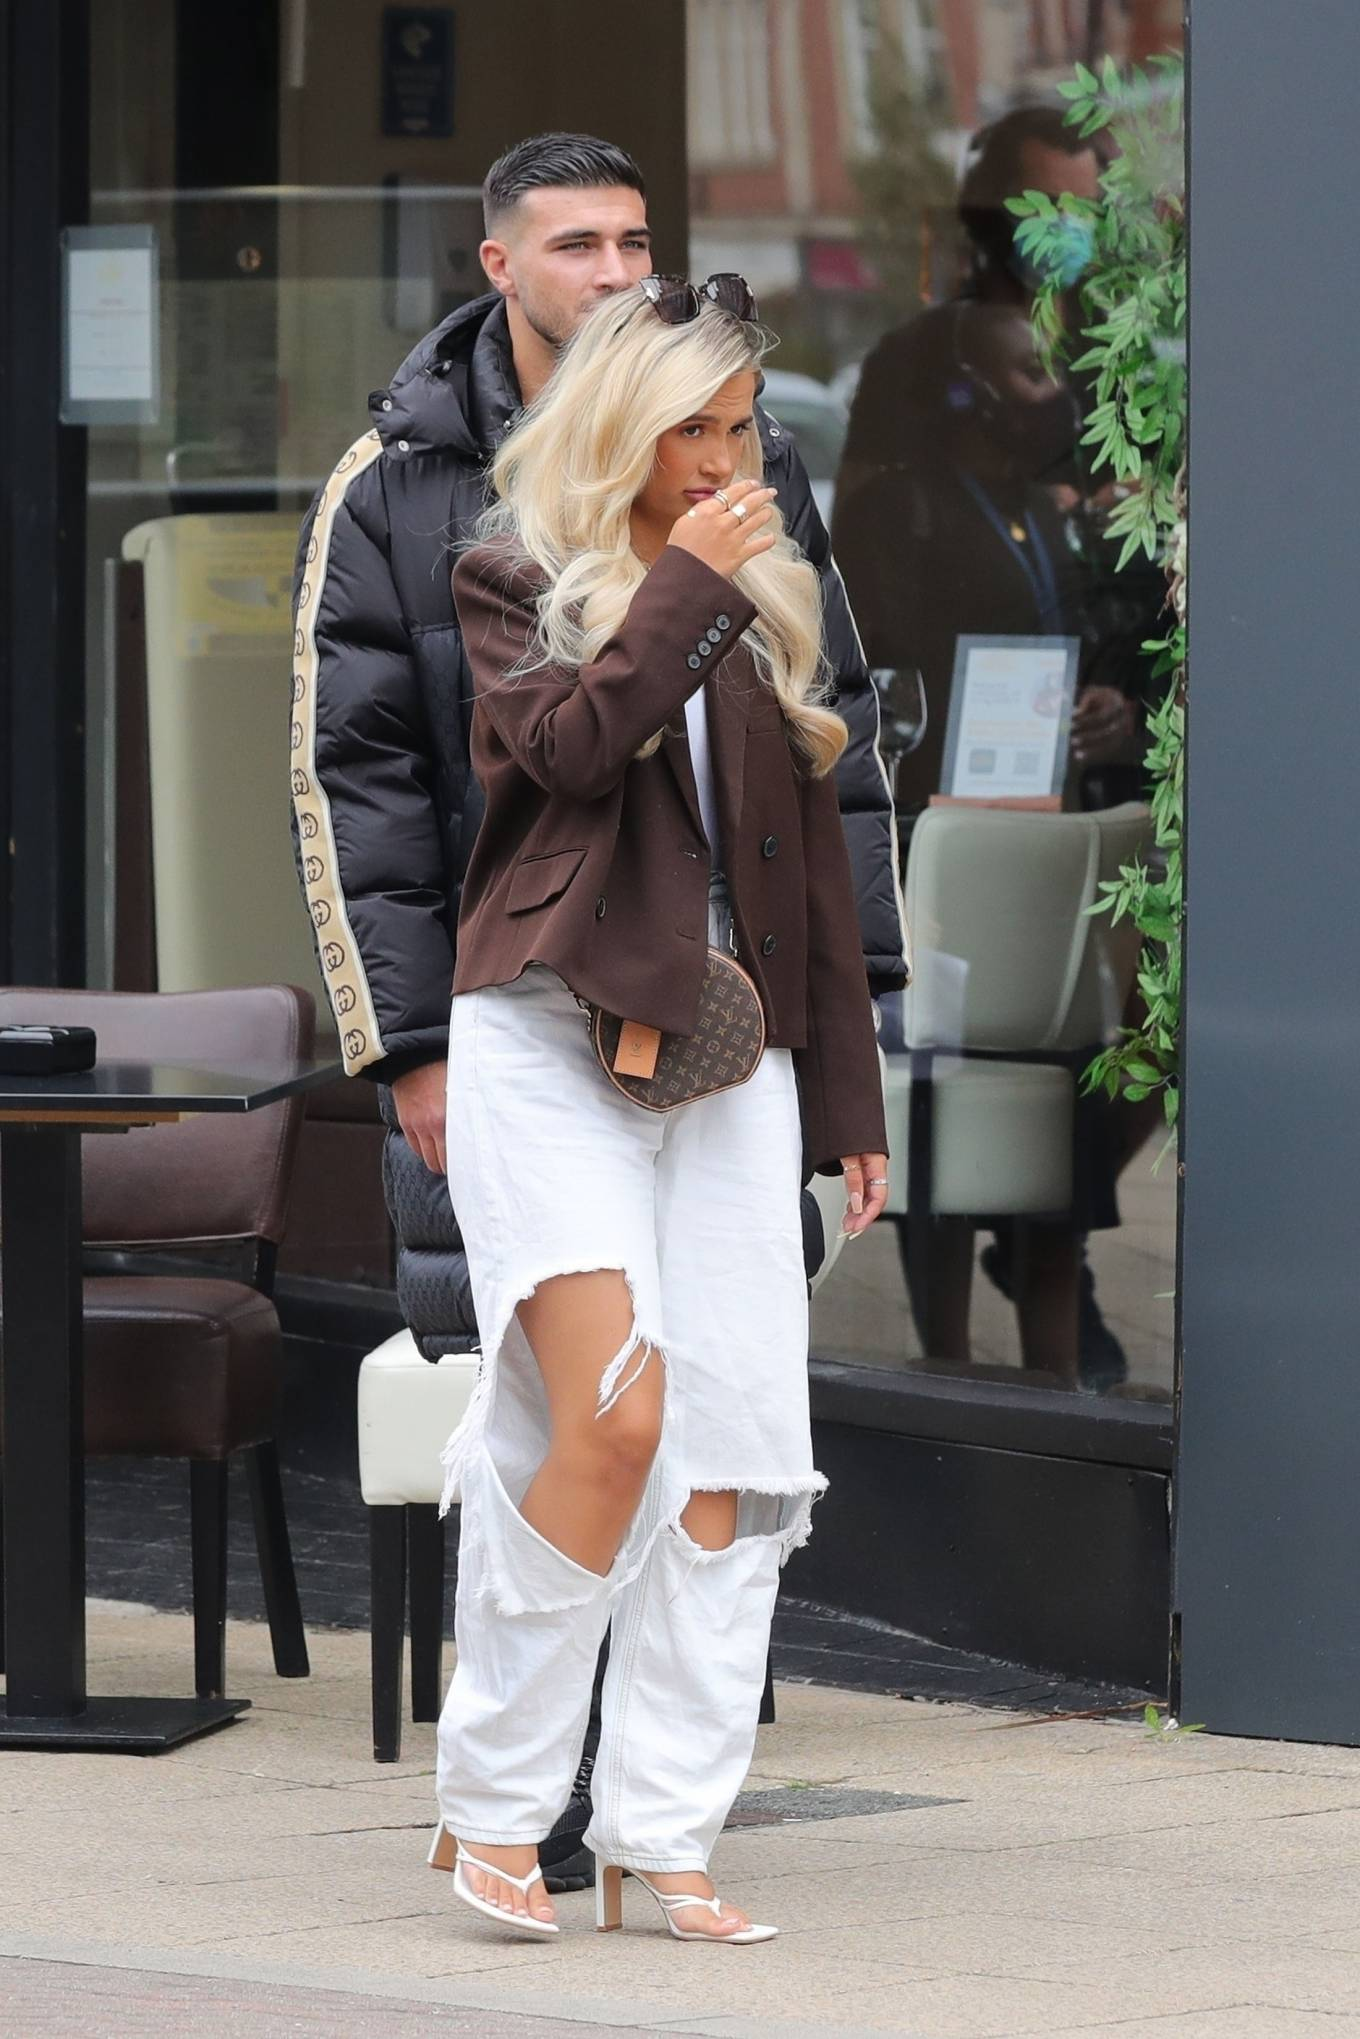 Molly-Mae Hague 2020 : Molly-Mae Hague and Tommy Fury – Seen while out in Cheshire -04